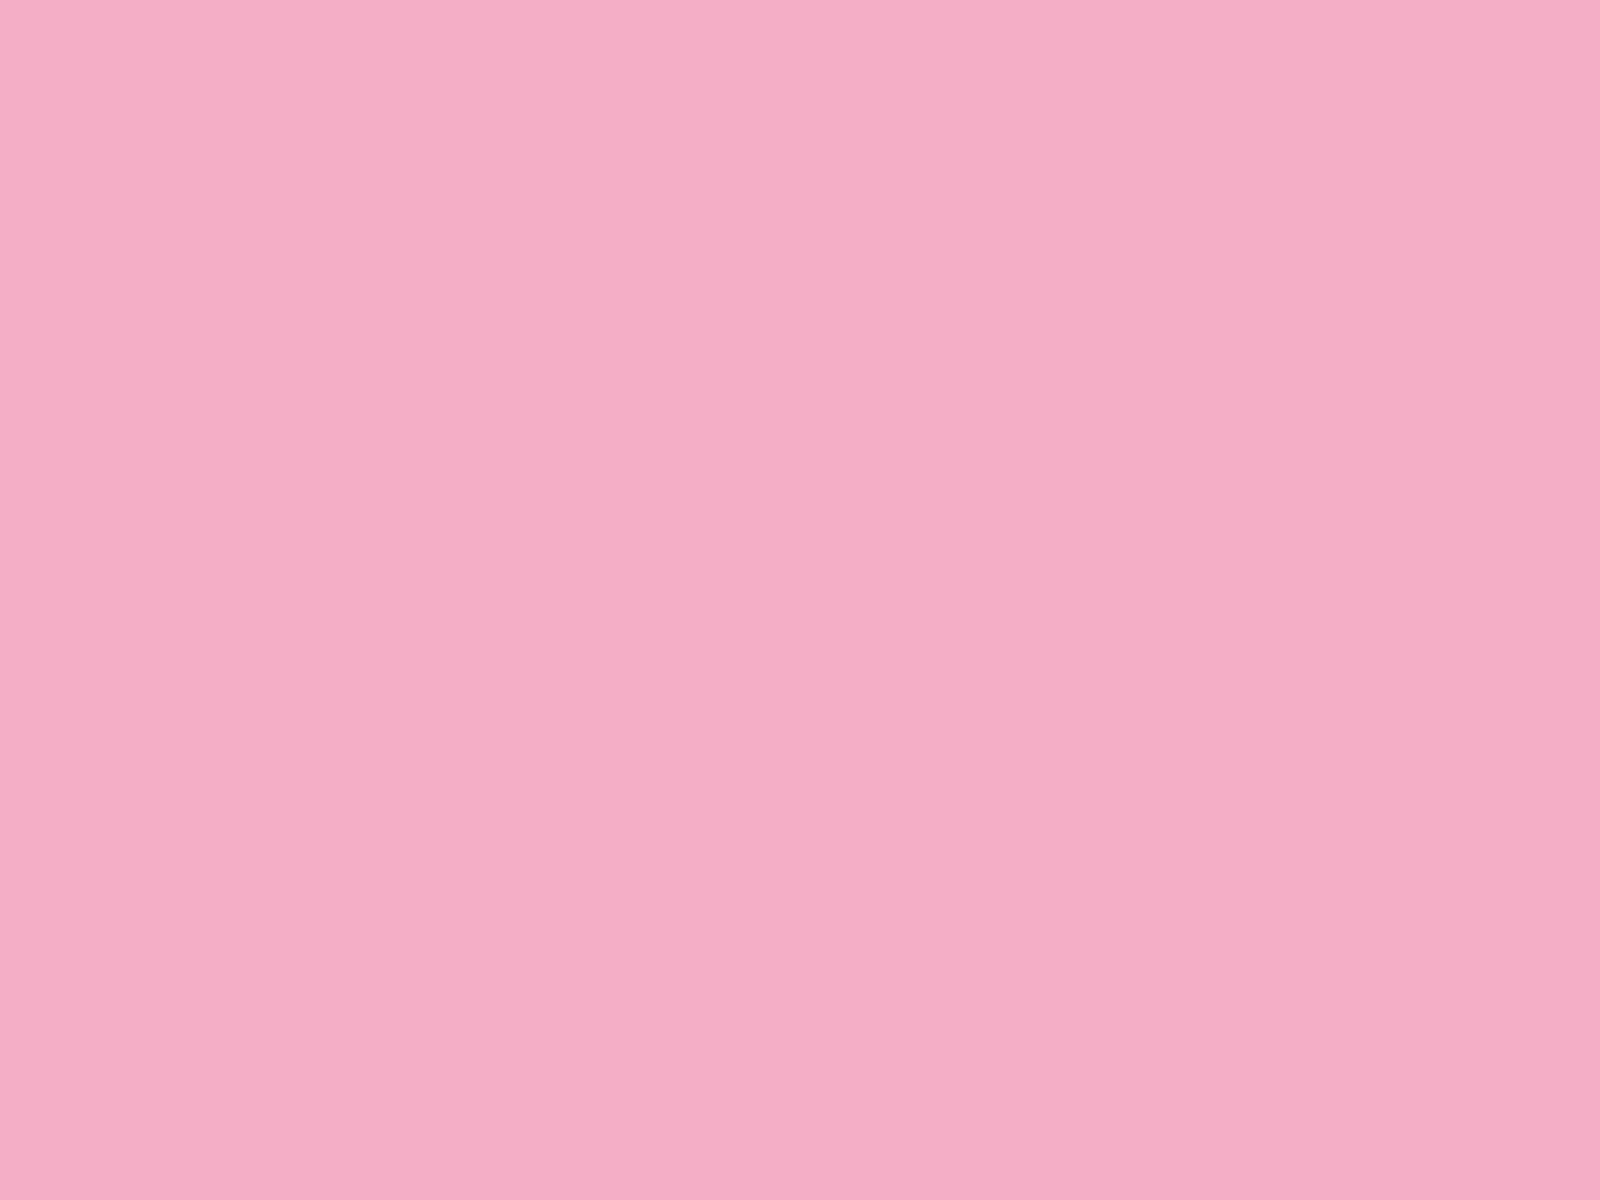 1600x1200 Nadeshiko Pink Solid Color Background